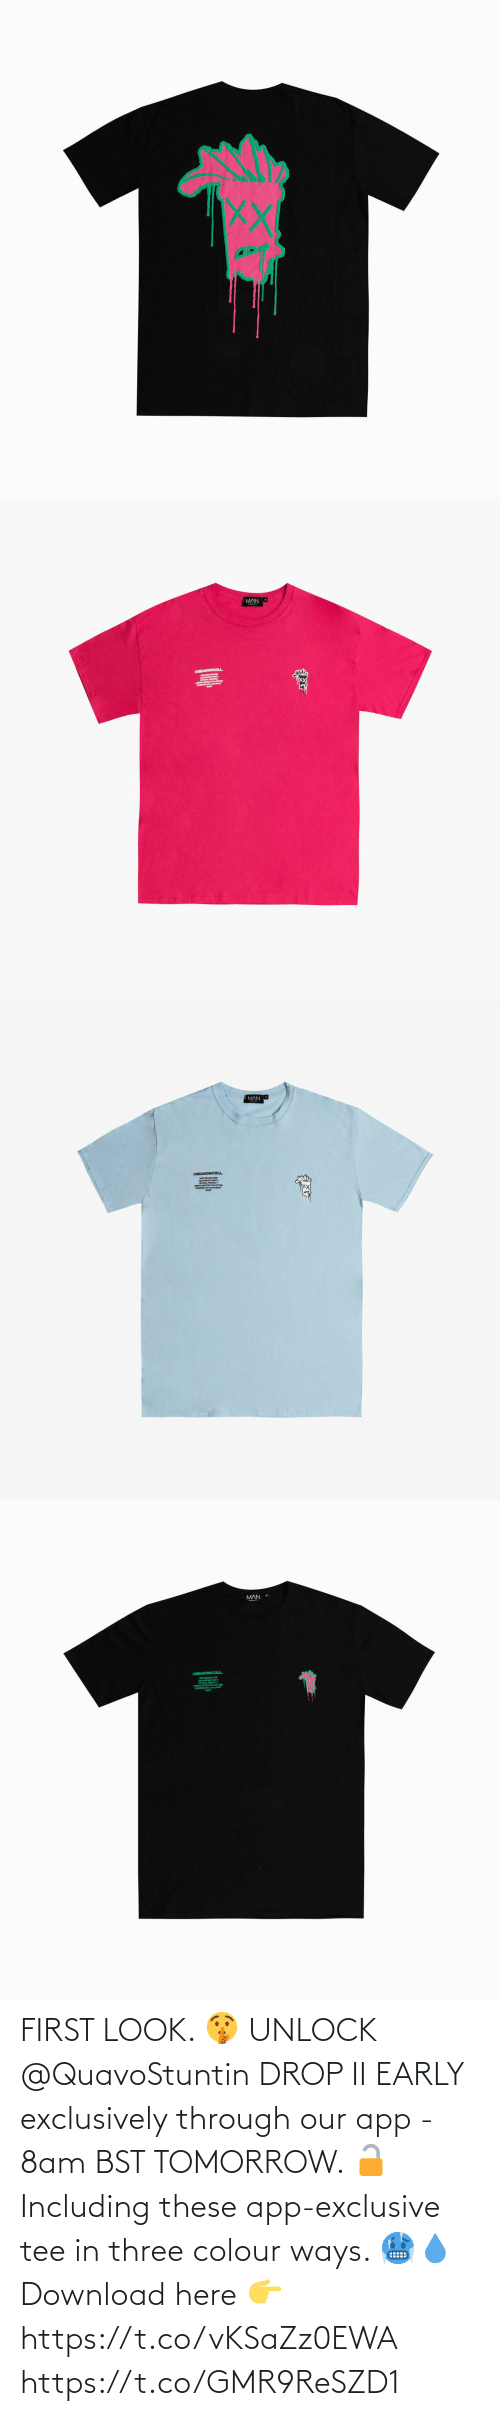 tee: FIRST LOOK. 🤫  UNLOCK @QuavoStuntin DROP II EARLY exclusively through our app - 8am BST TOMORROW. 🔓  Including these app-exclusive tee in three colour ways. 🥶💧  Download here 👉 https://t.co/vKSaZz0EWA https://t.co/GMR9ReSZD1